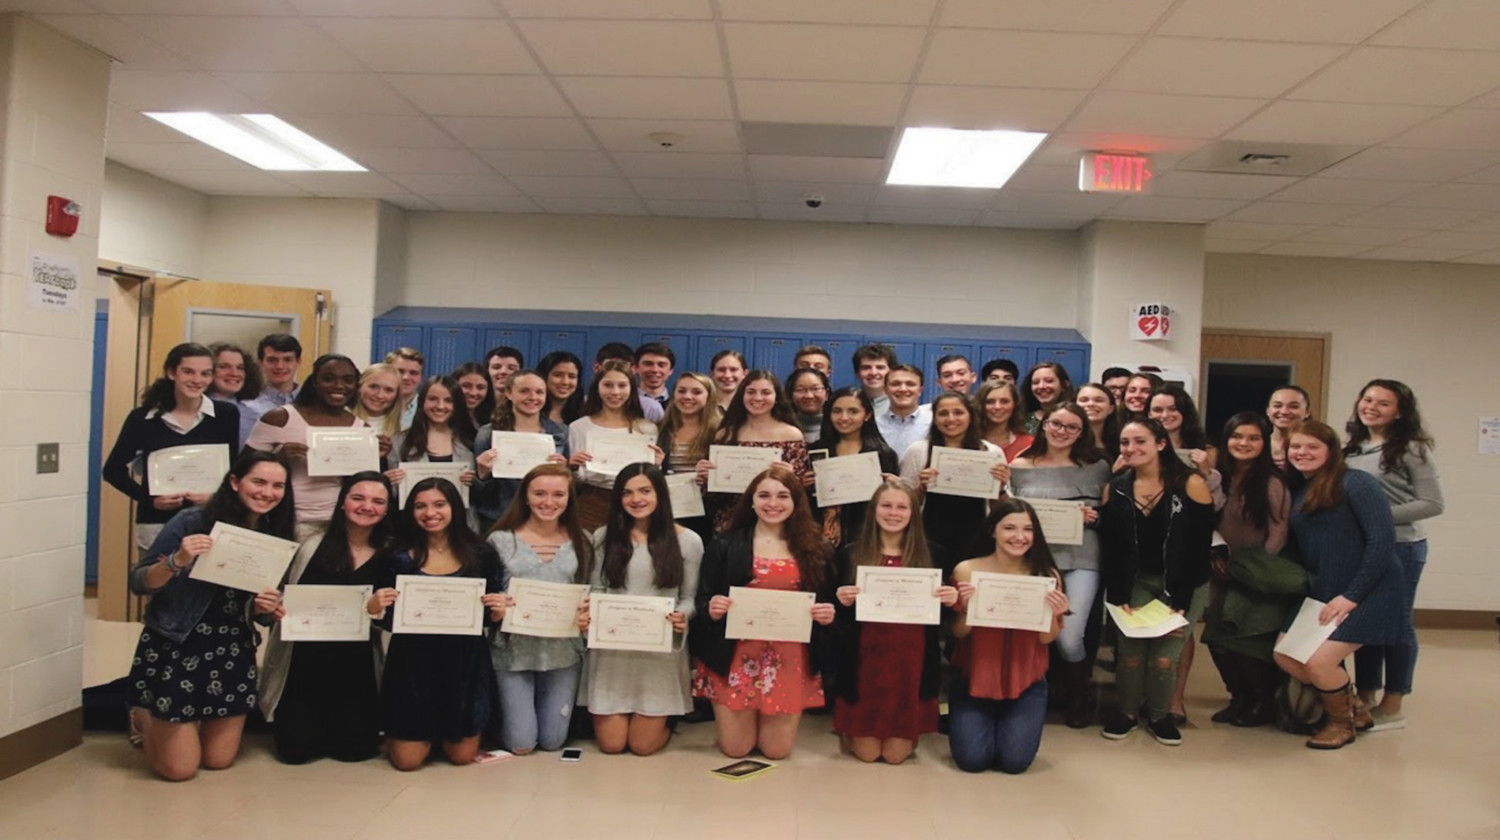 Four-dozen South Side High School students were inducted into the state's science honor society.